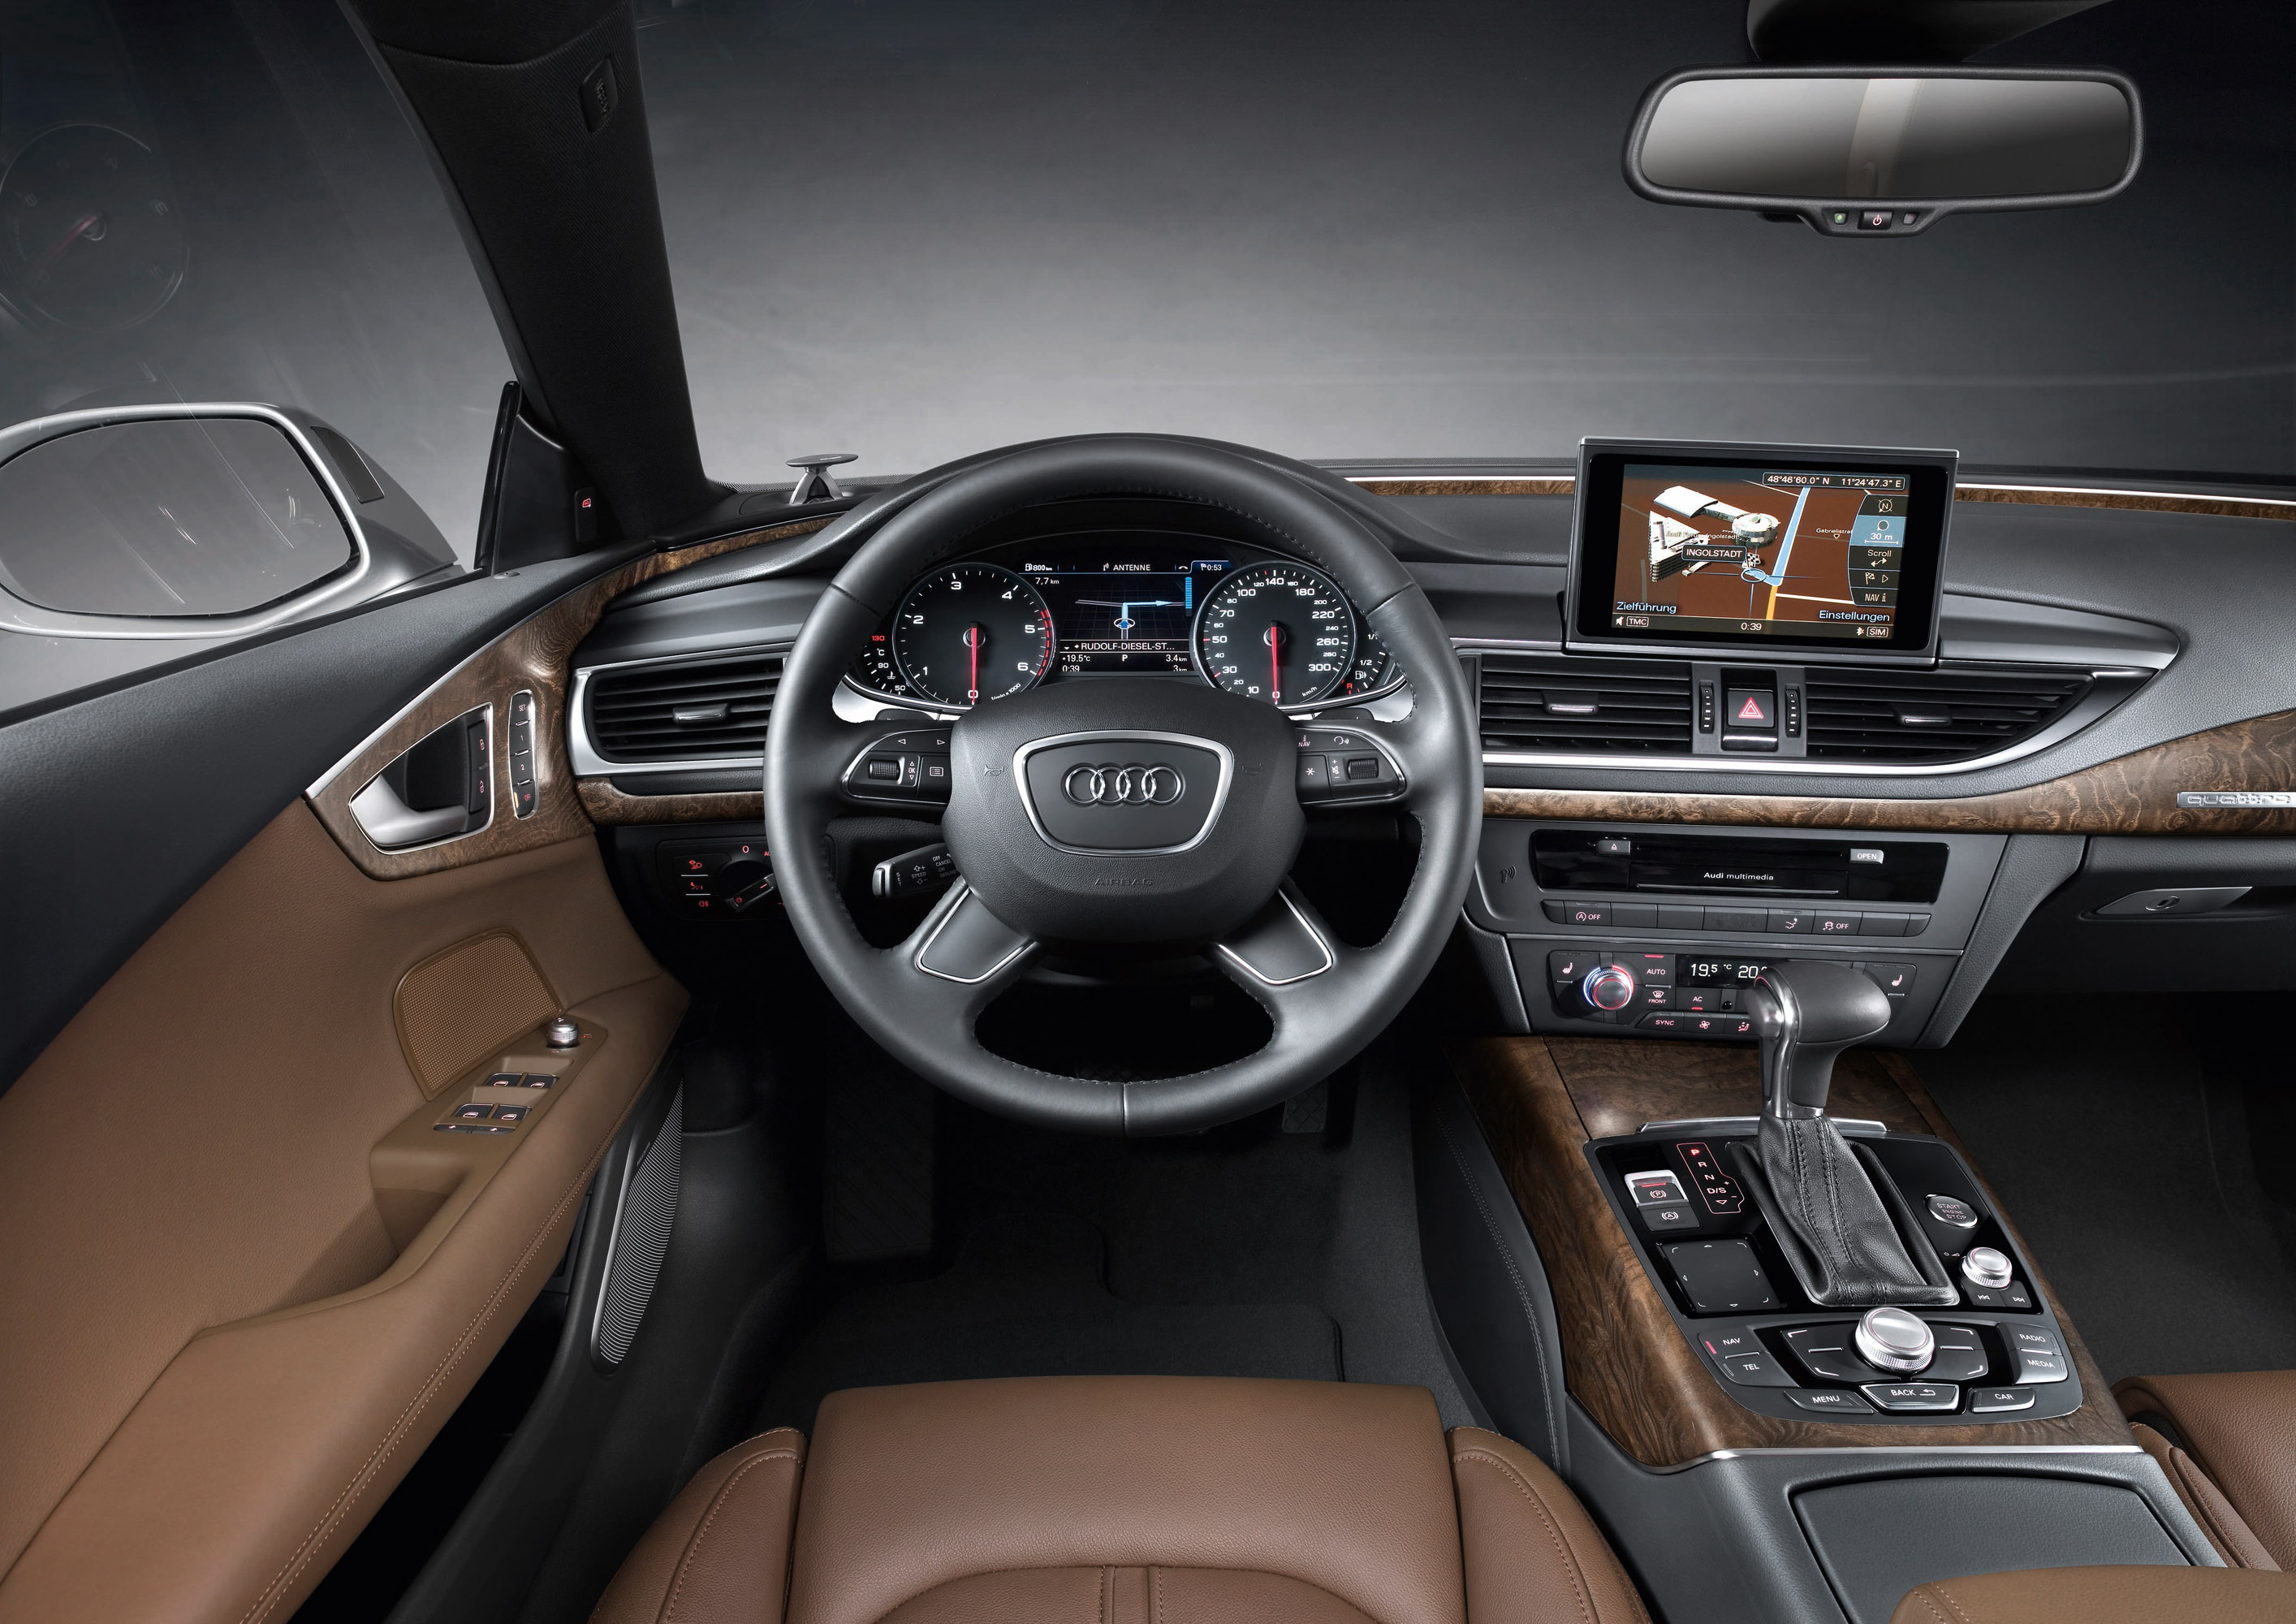 2010 audi a7 sportback dark cars wallpapers. Black Bedroom Furniture Sets. Home Design Ideas